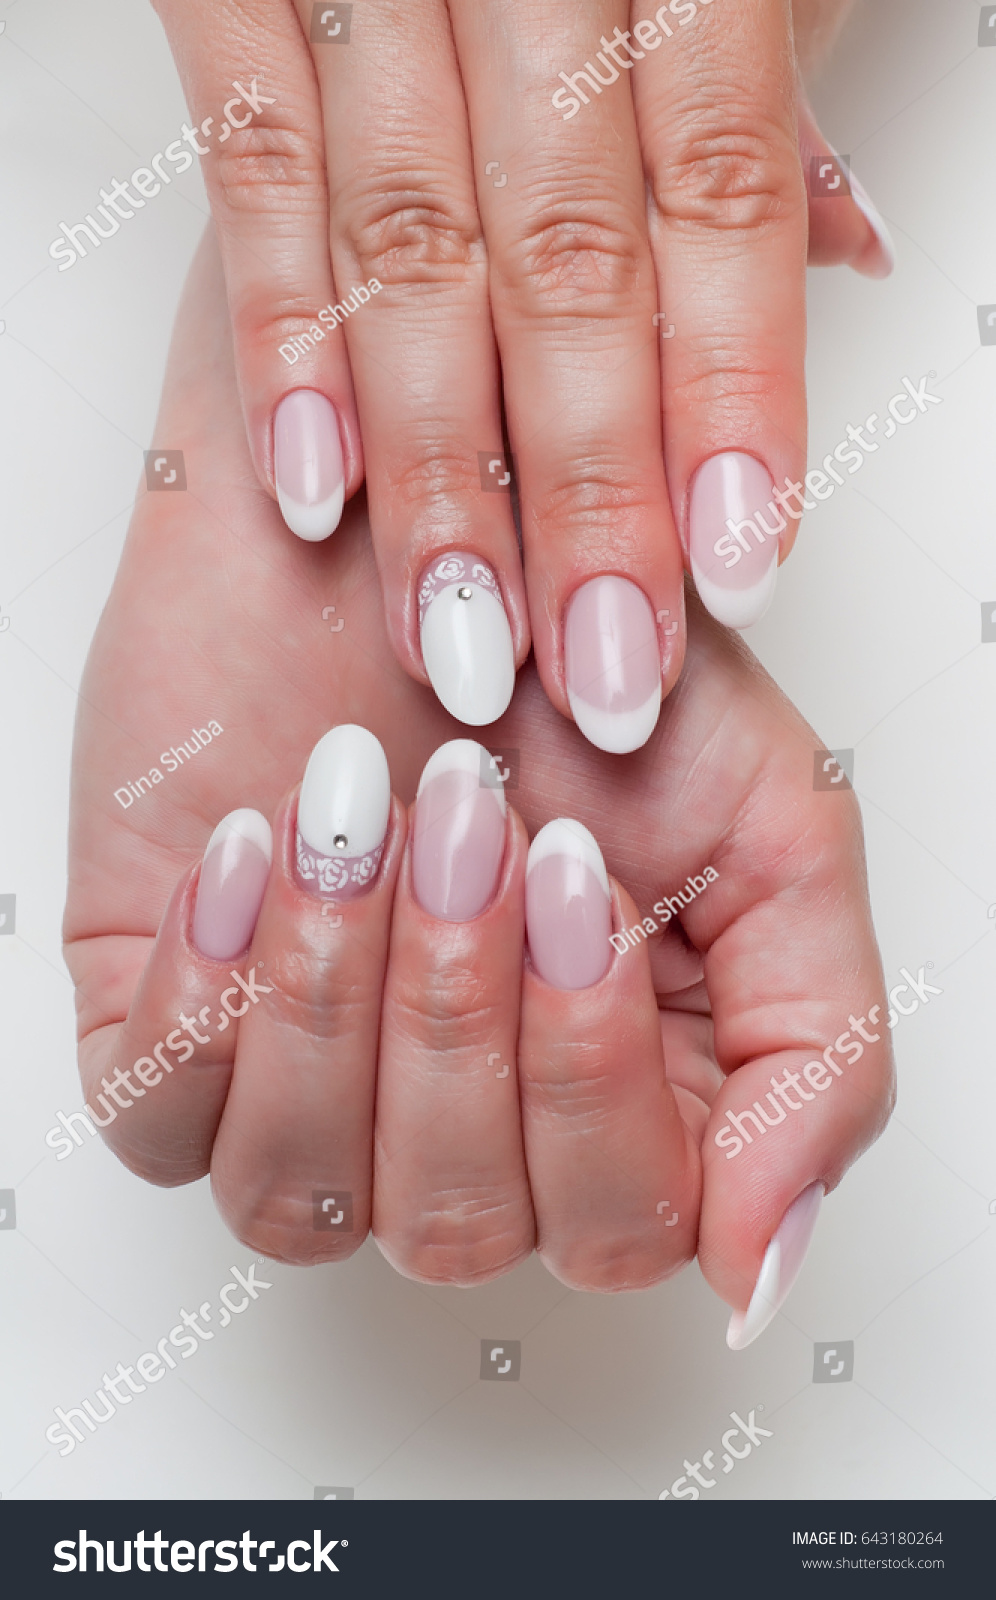 Wedding French Manicure Crystals On Long Stock Photo & Image ...